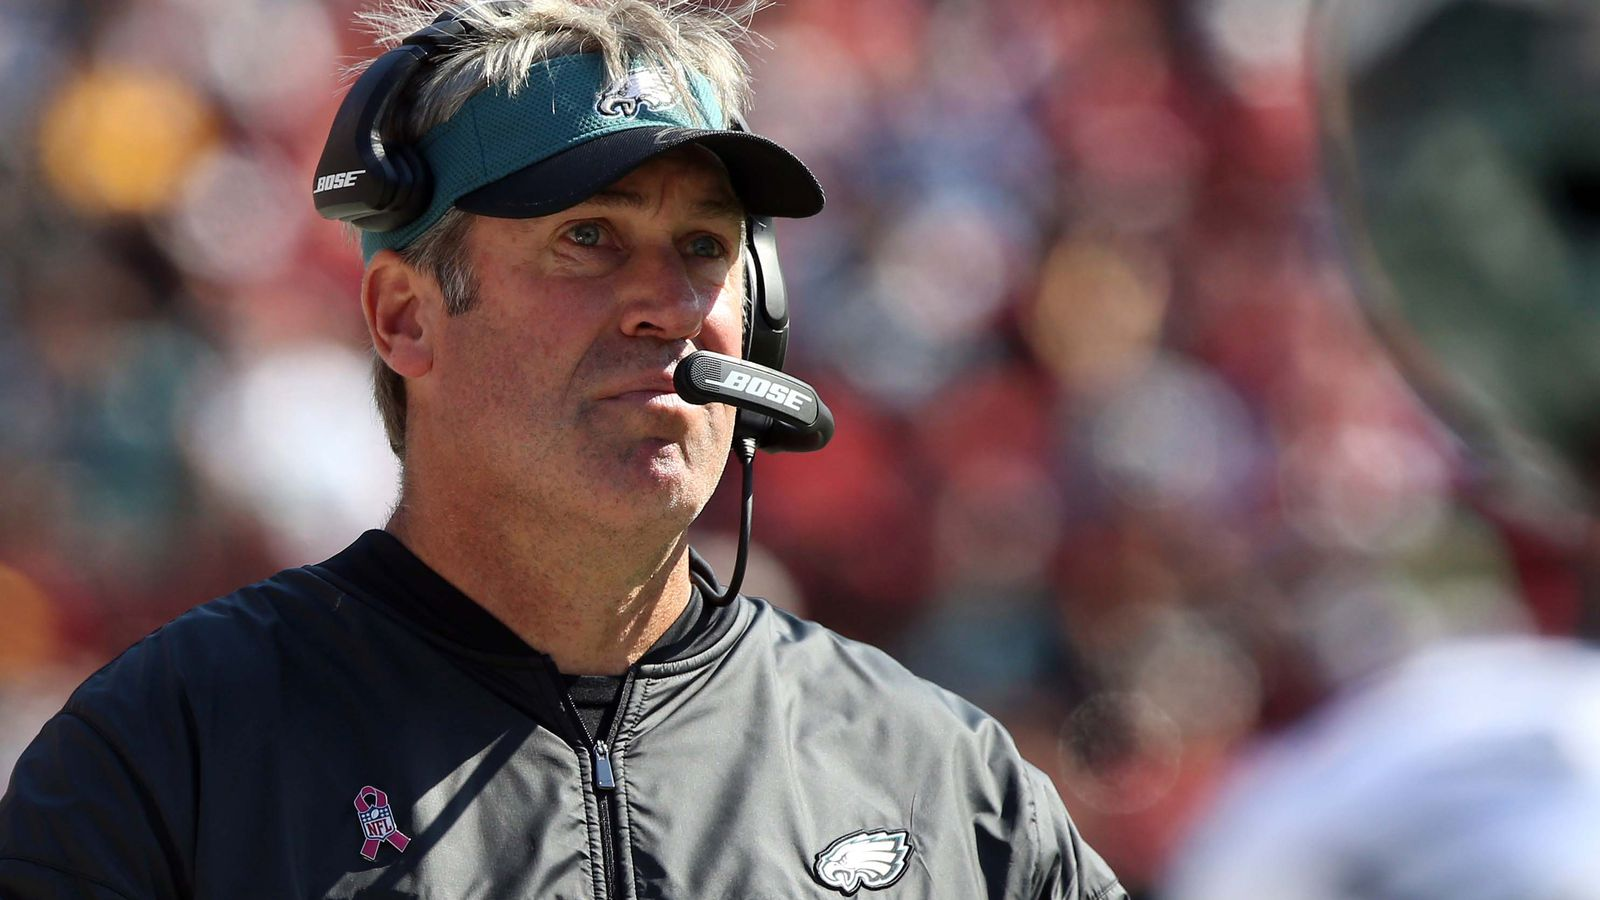 doug pederson - photo #32